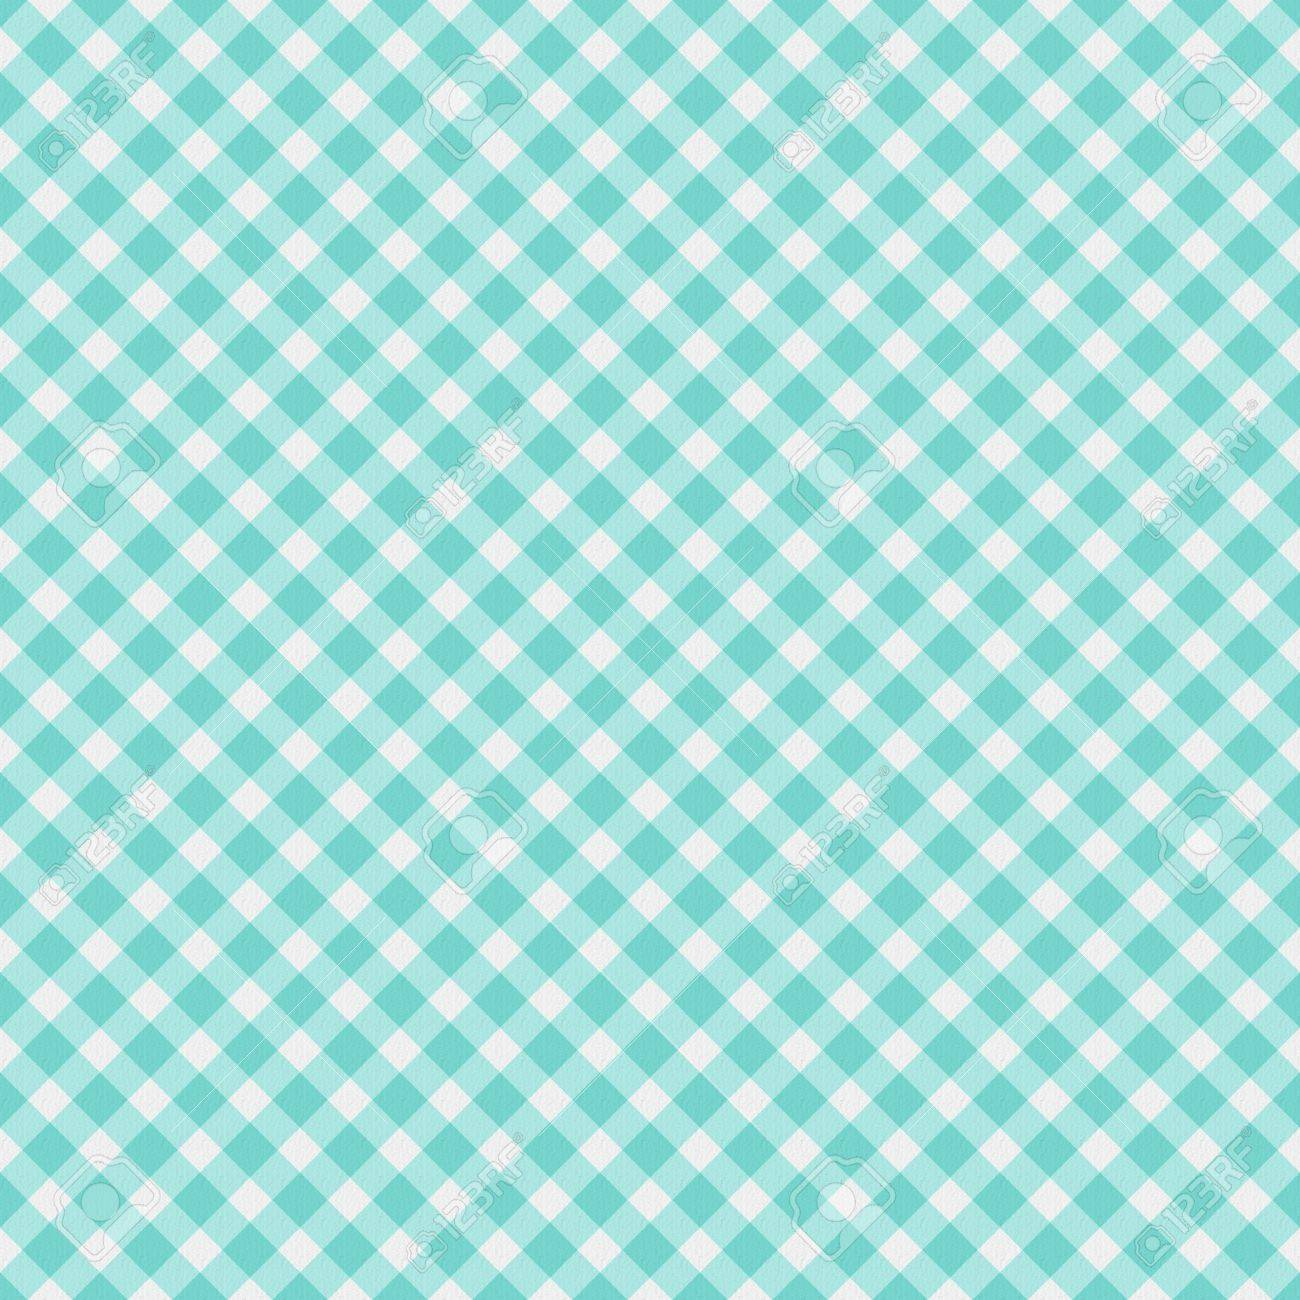 A Light Aqua Blue Gingham Fabric Background That Is Seamless Stock Photo Picture And Royalty Free Image Image 18117660